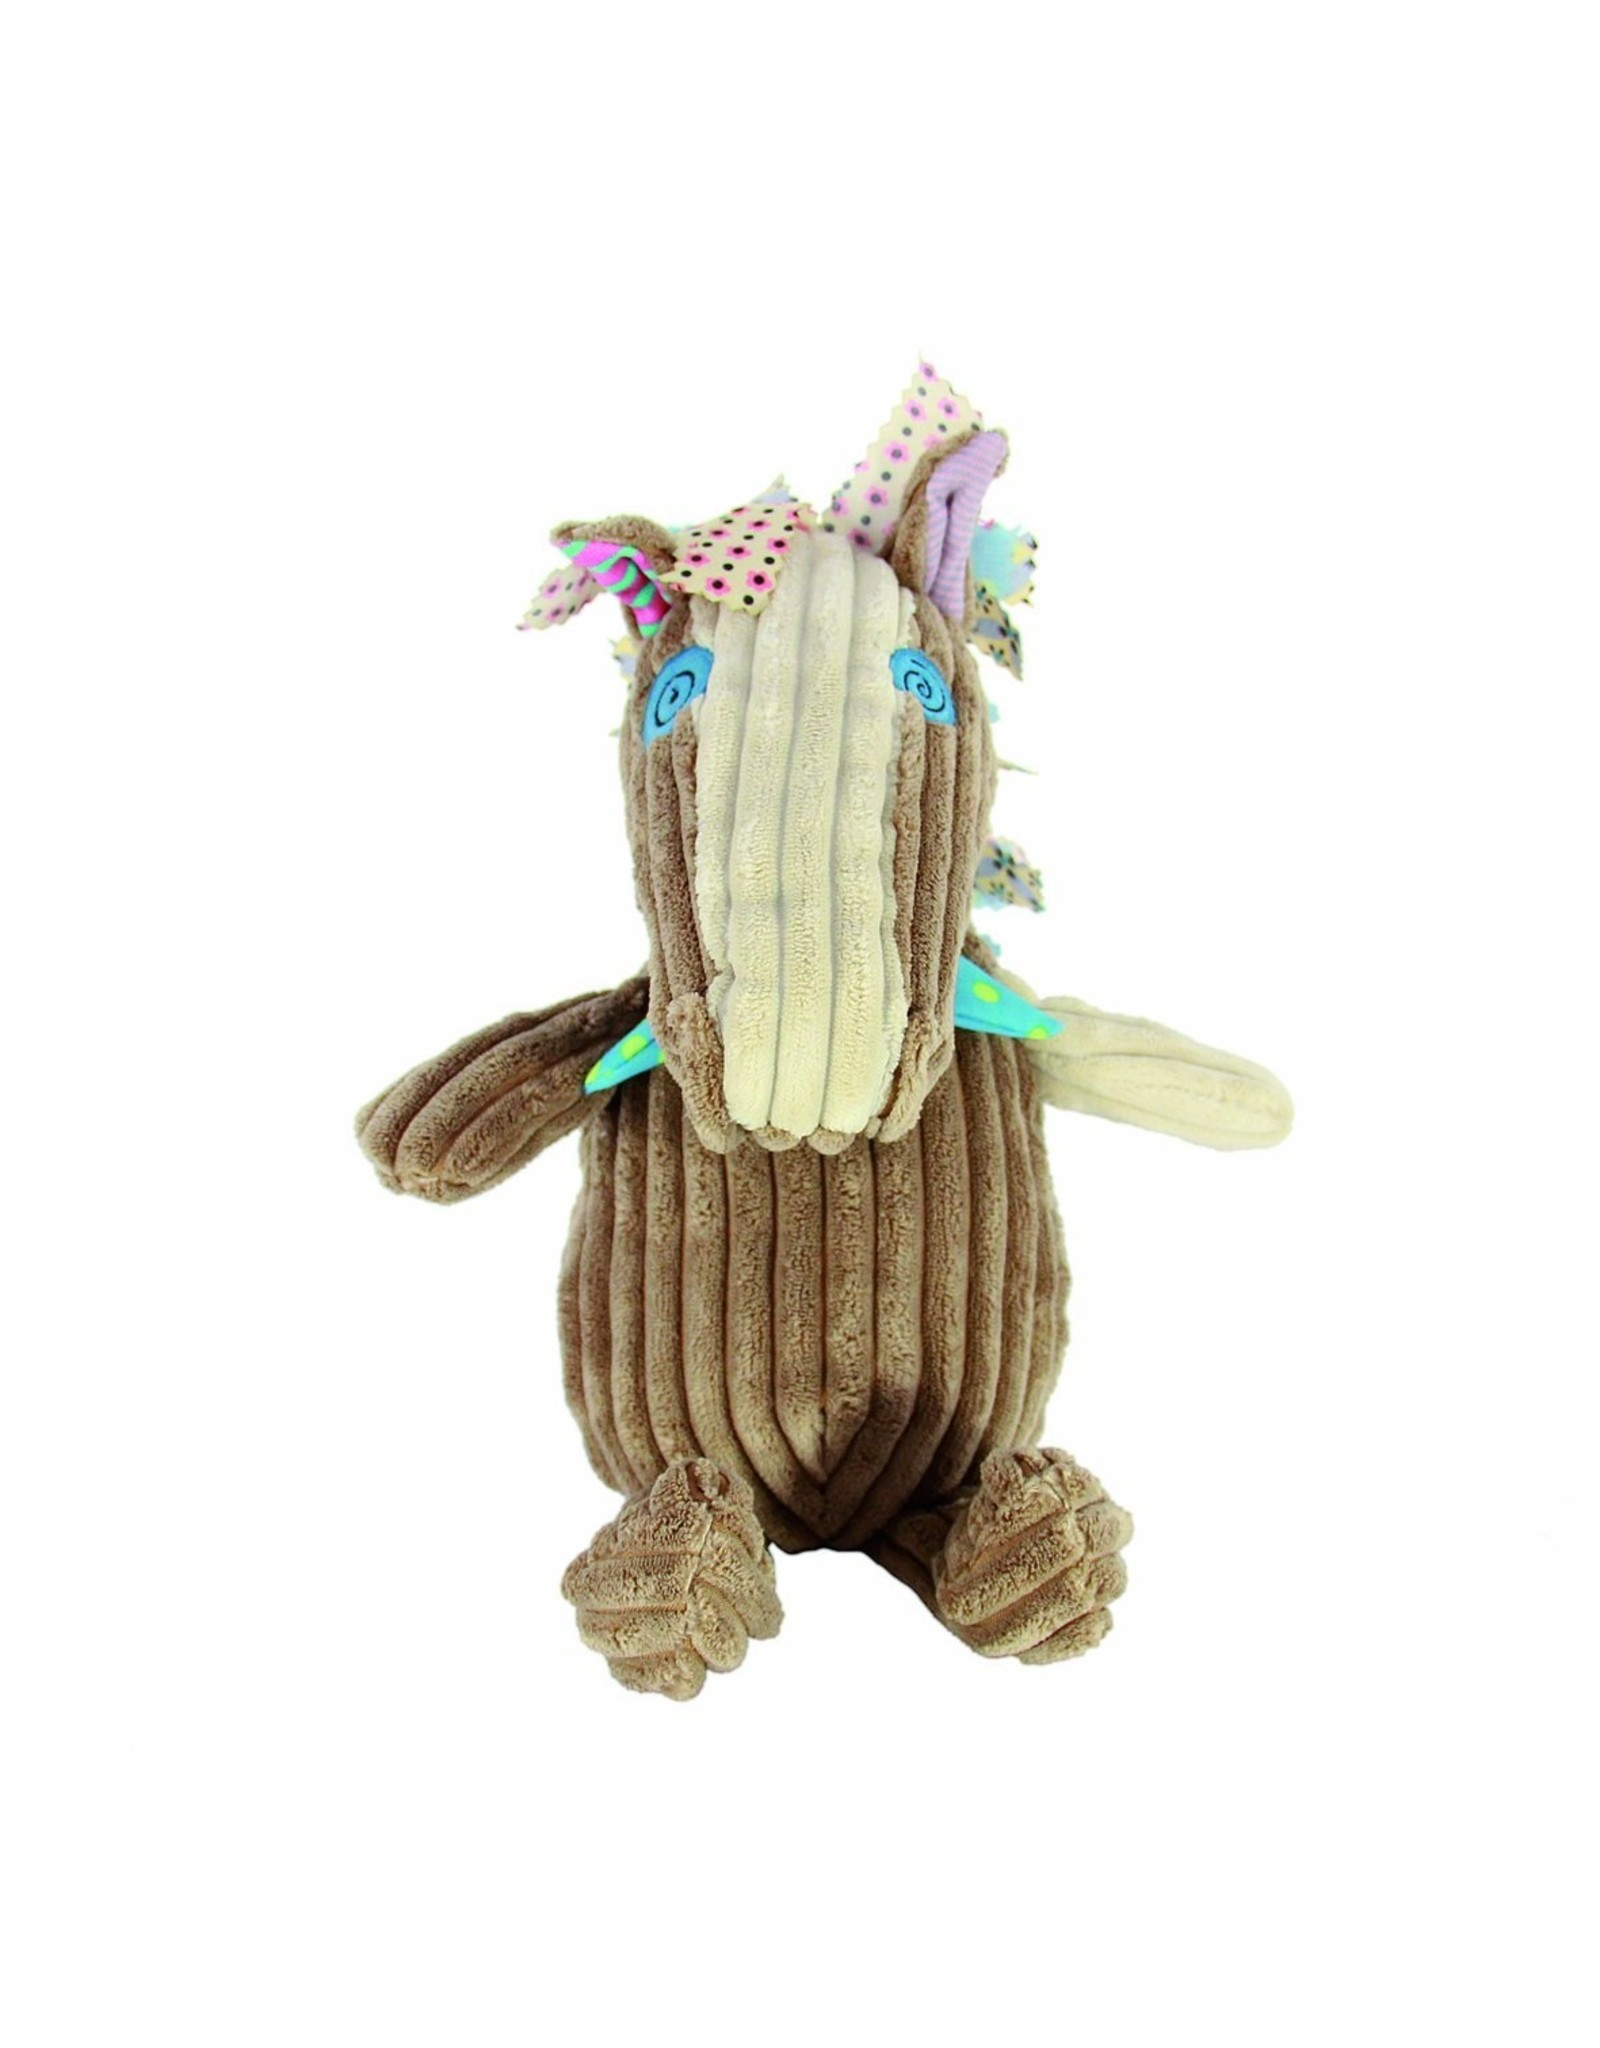 Deglingos stuffed animal - Ogalos the horse - simply collection